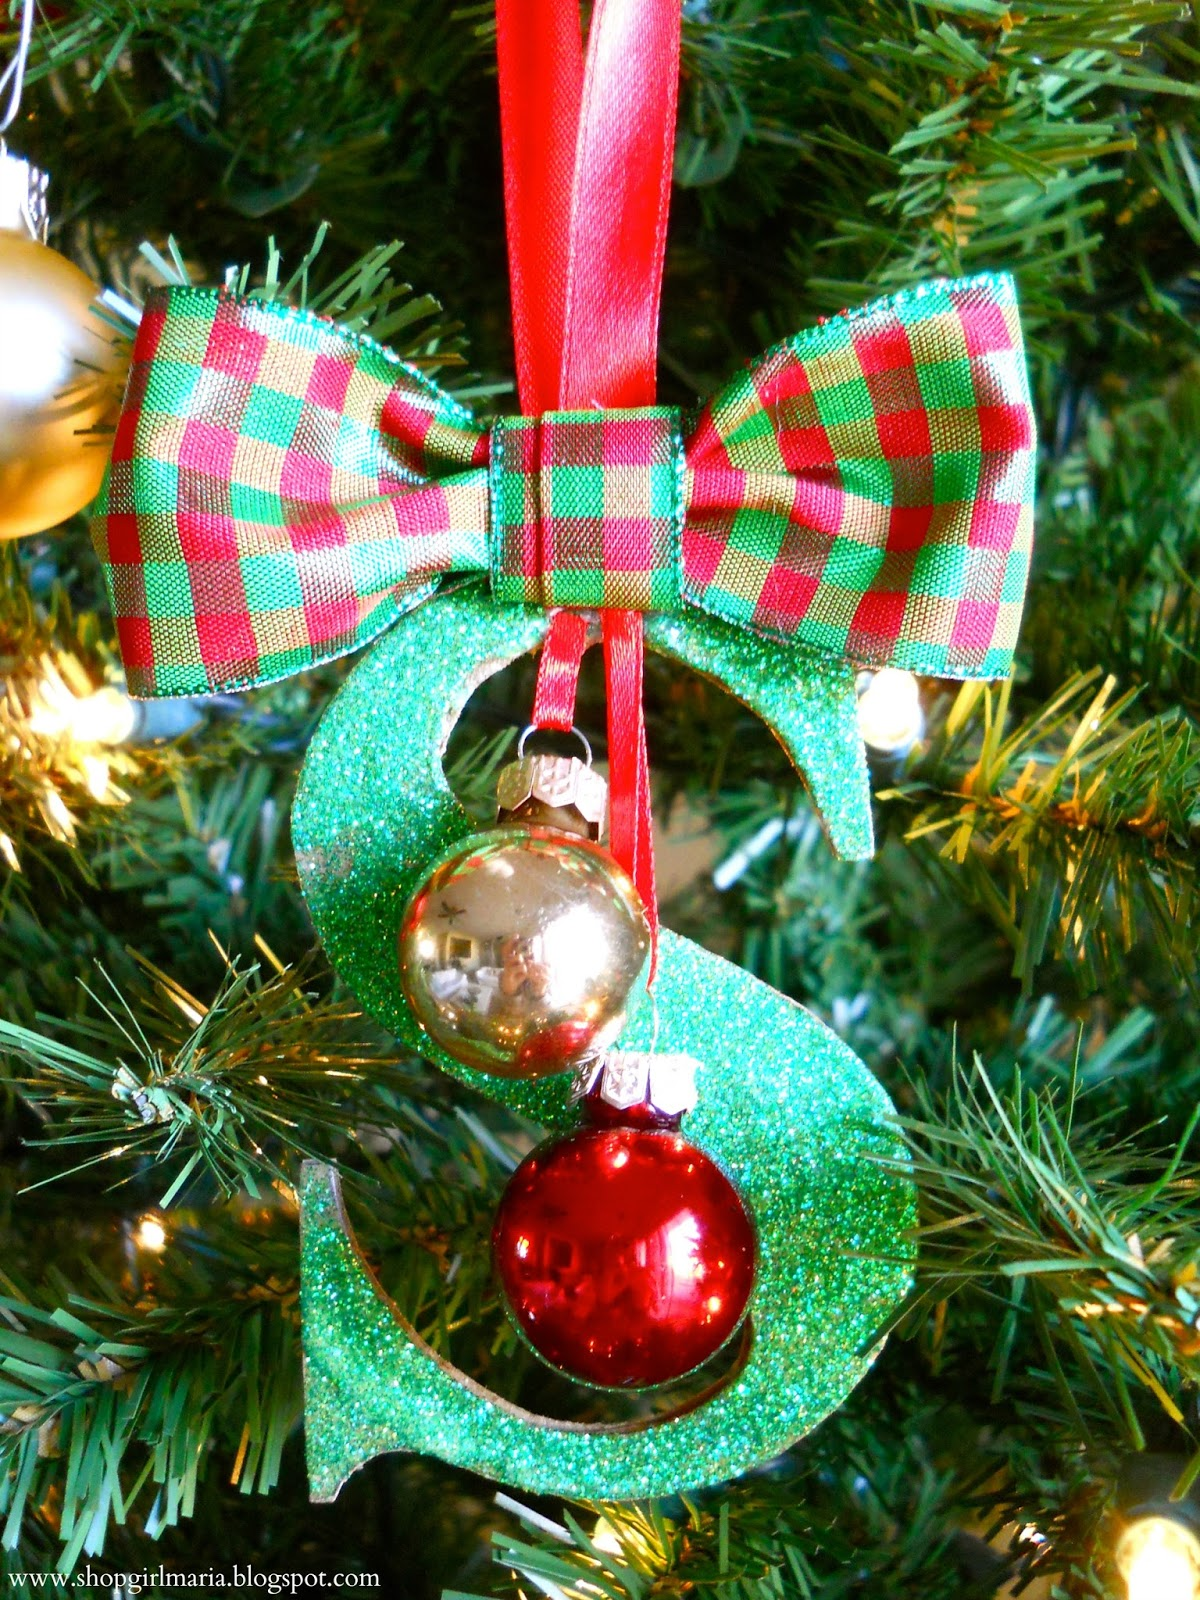 25 DIY Christmas Ornament Ideas to do with your kids, with friends, or by yourself! Add the handmade touch to your tree! Pin now to read now or later!